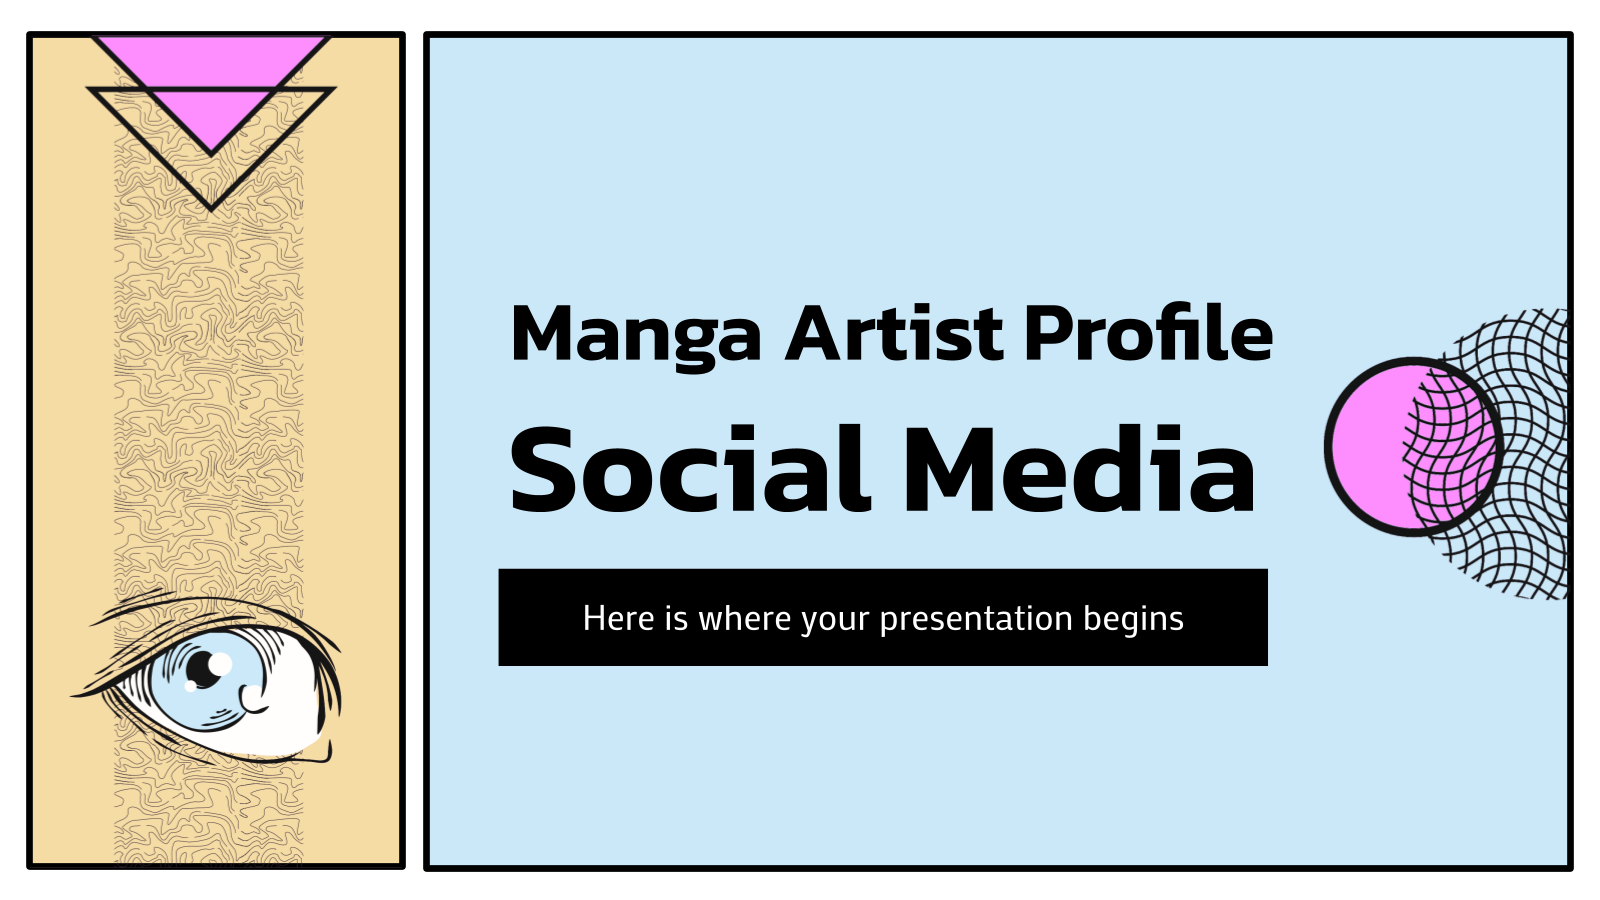 Manga Artist Profile Social Media presentation template